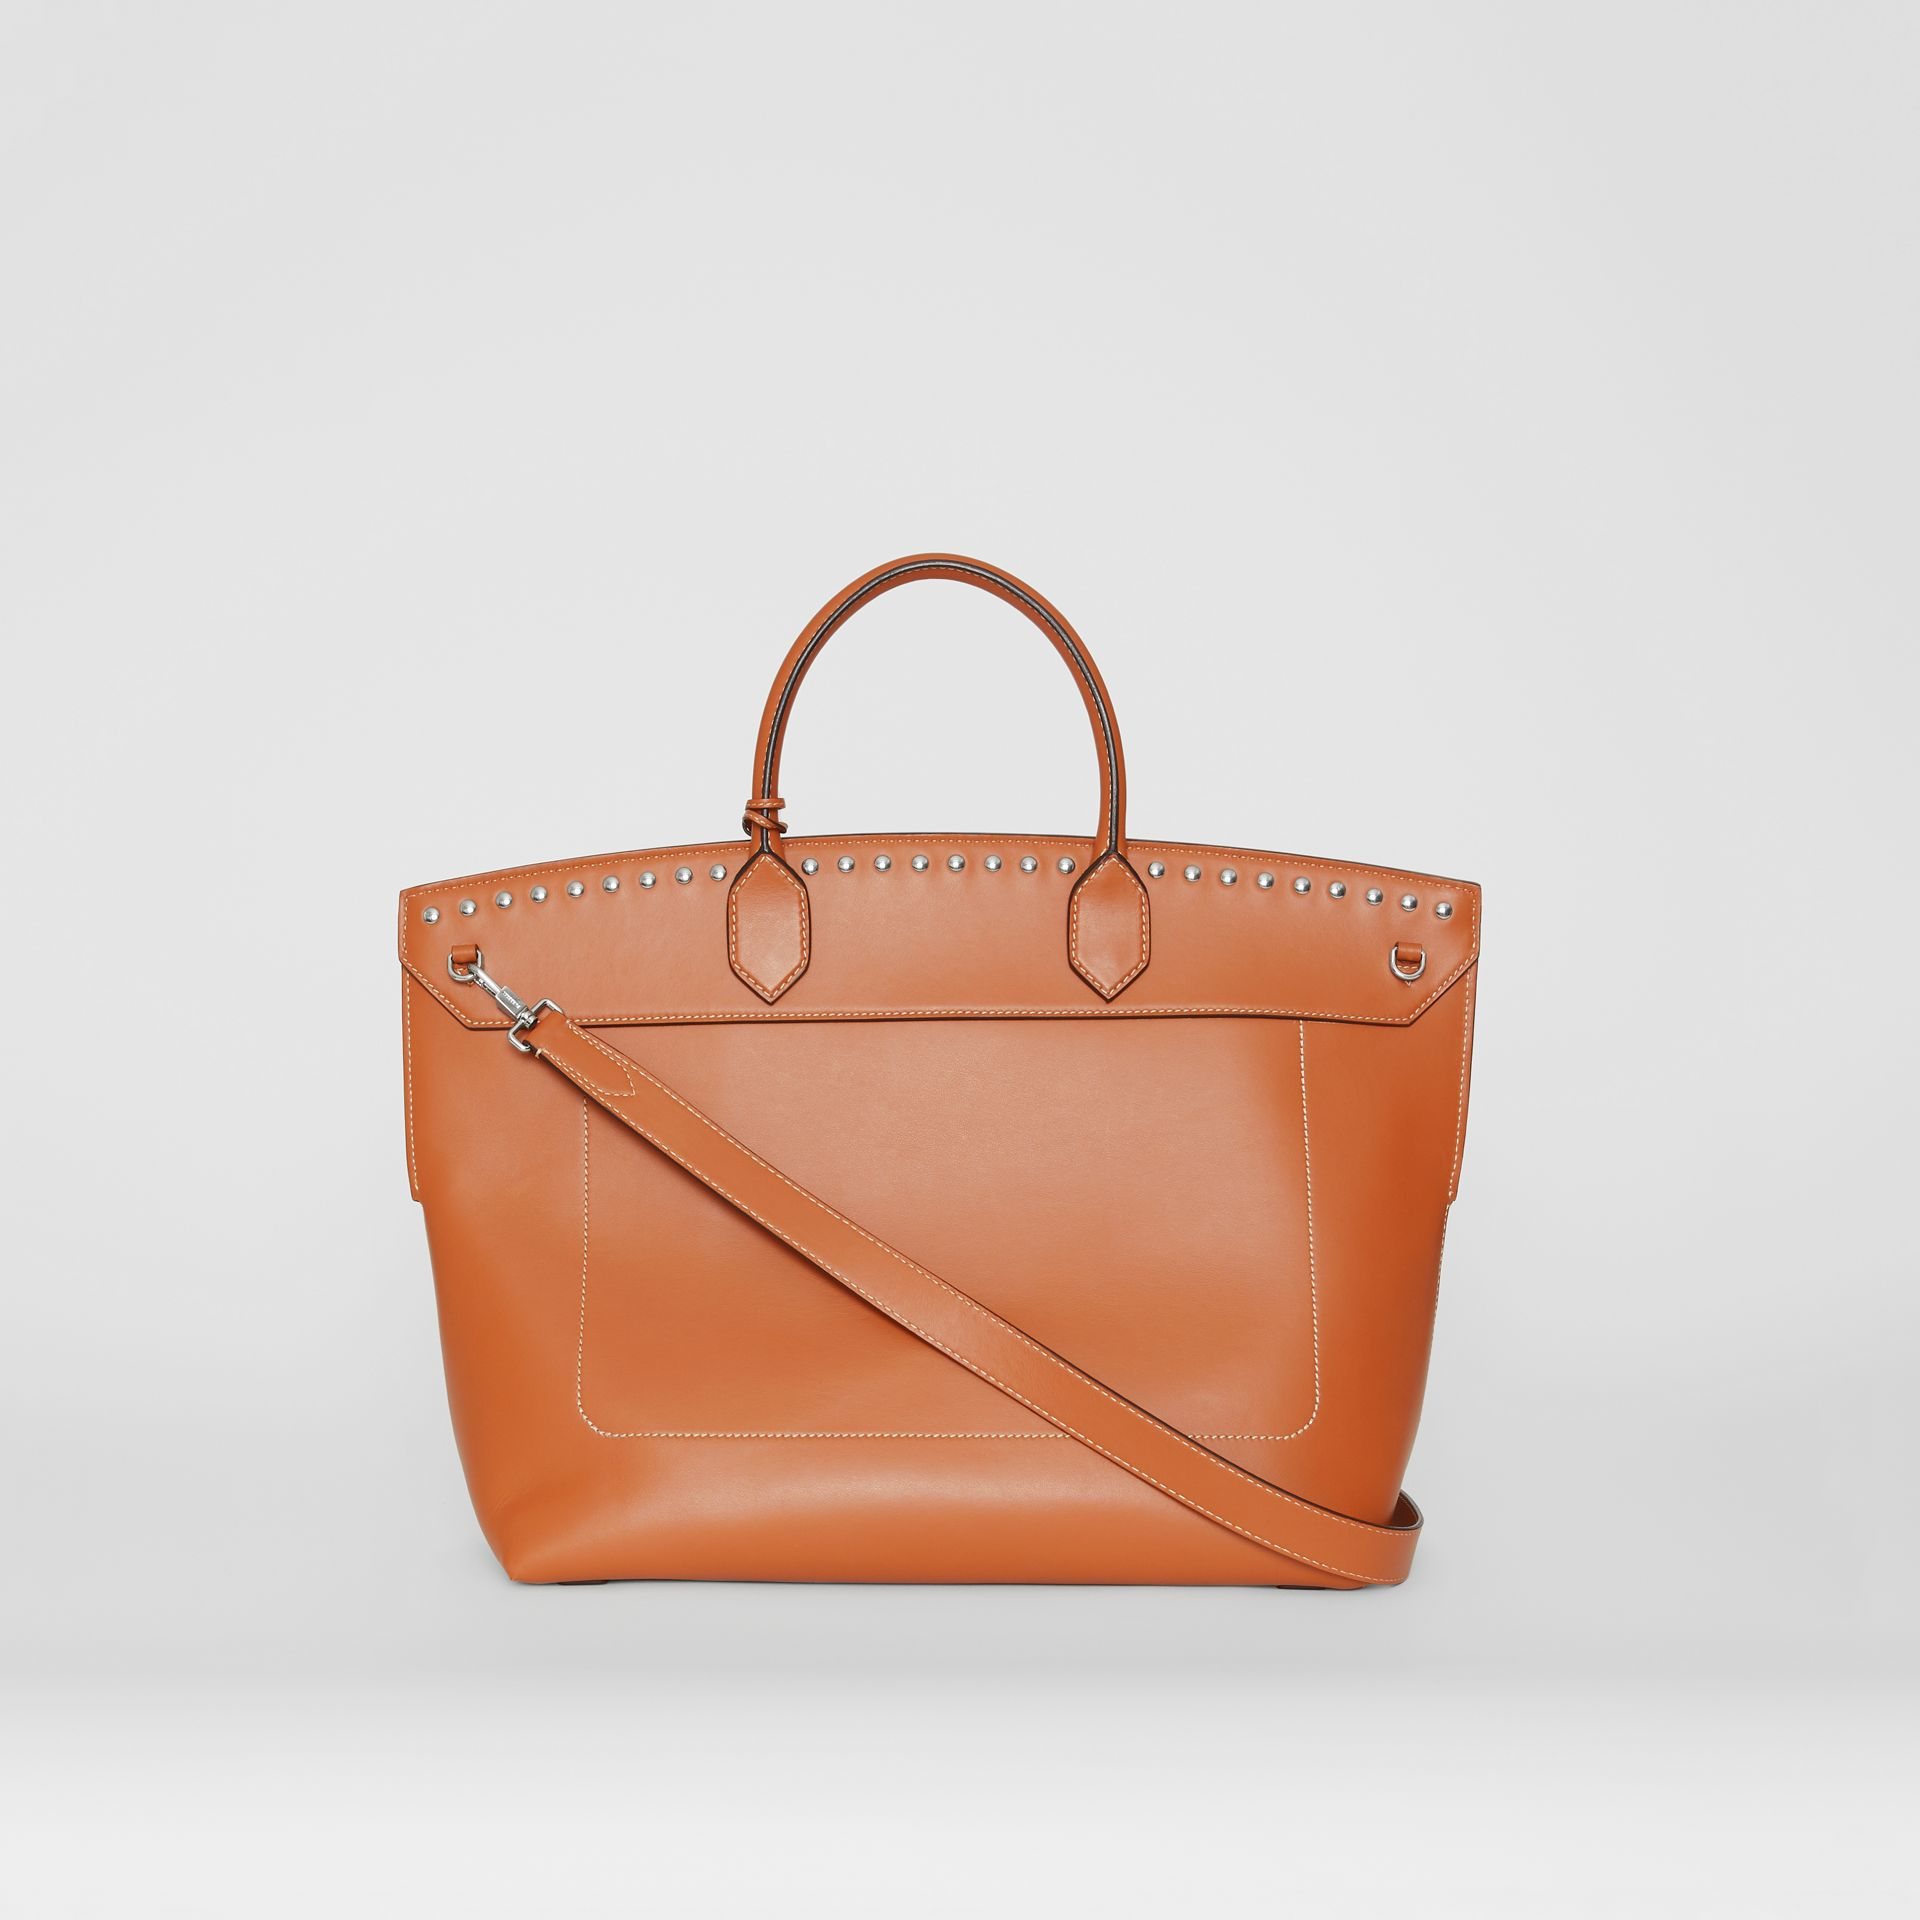 Studded Leather Society Top Handle Bag in Copper Brown - Women | Burberry United Kingdom - gallery image 7